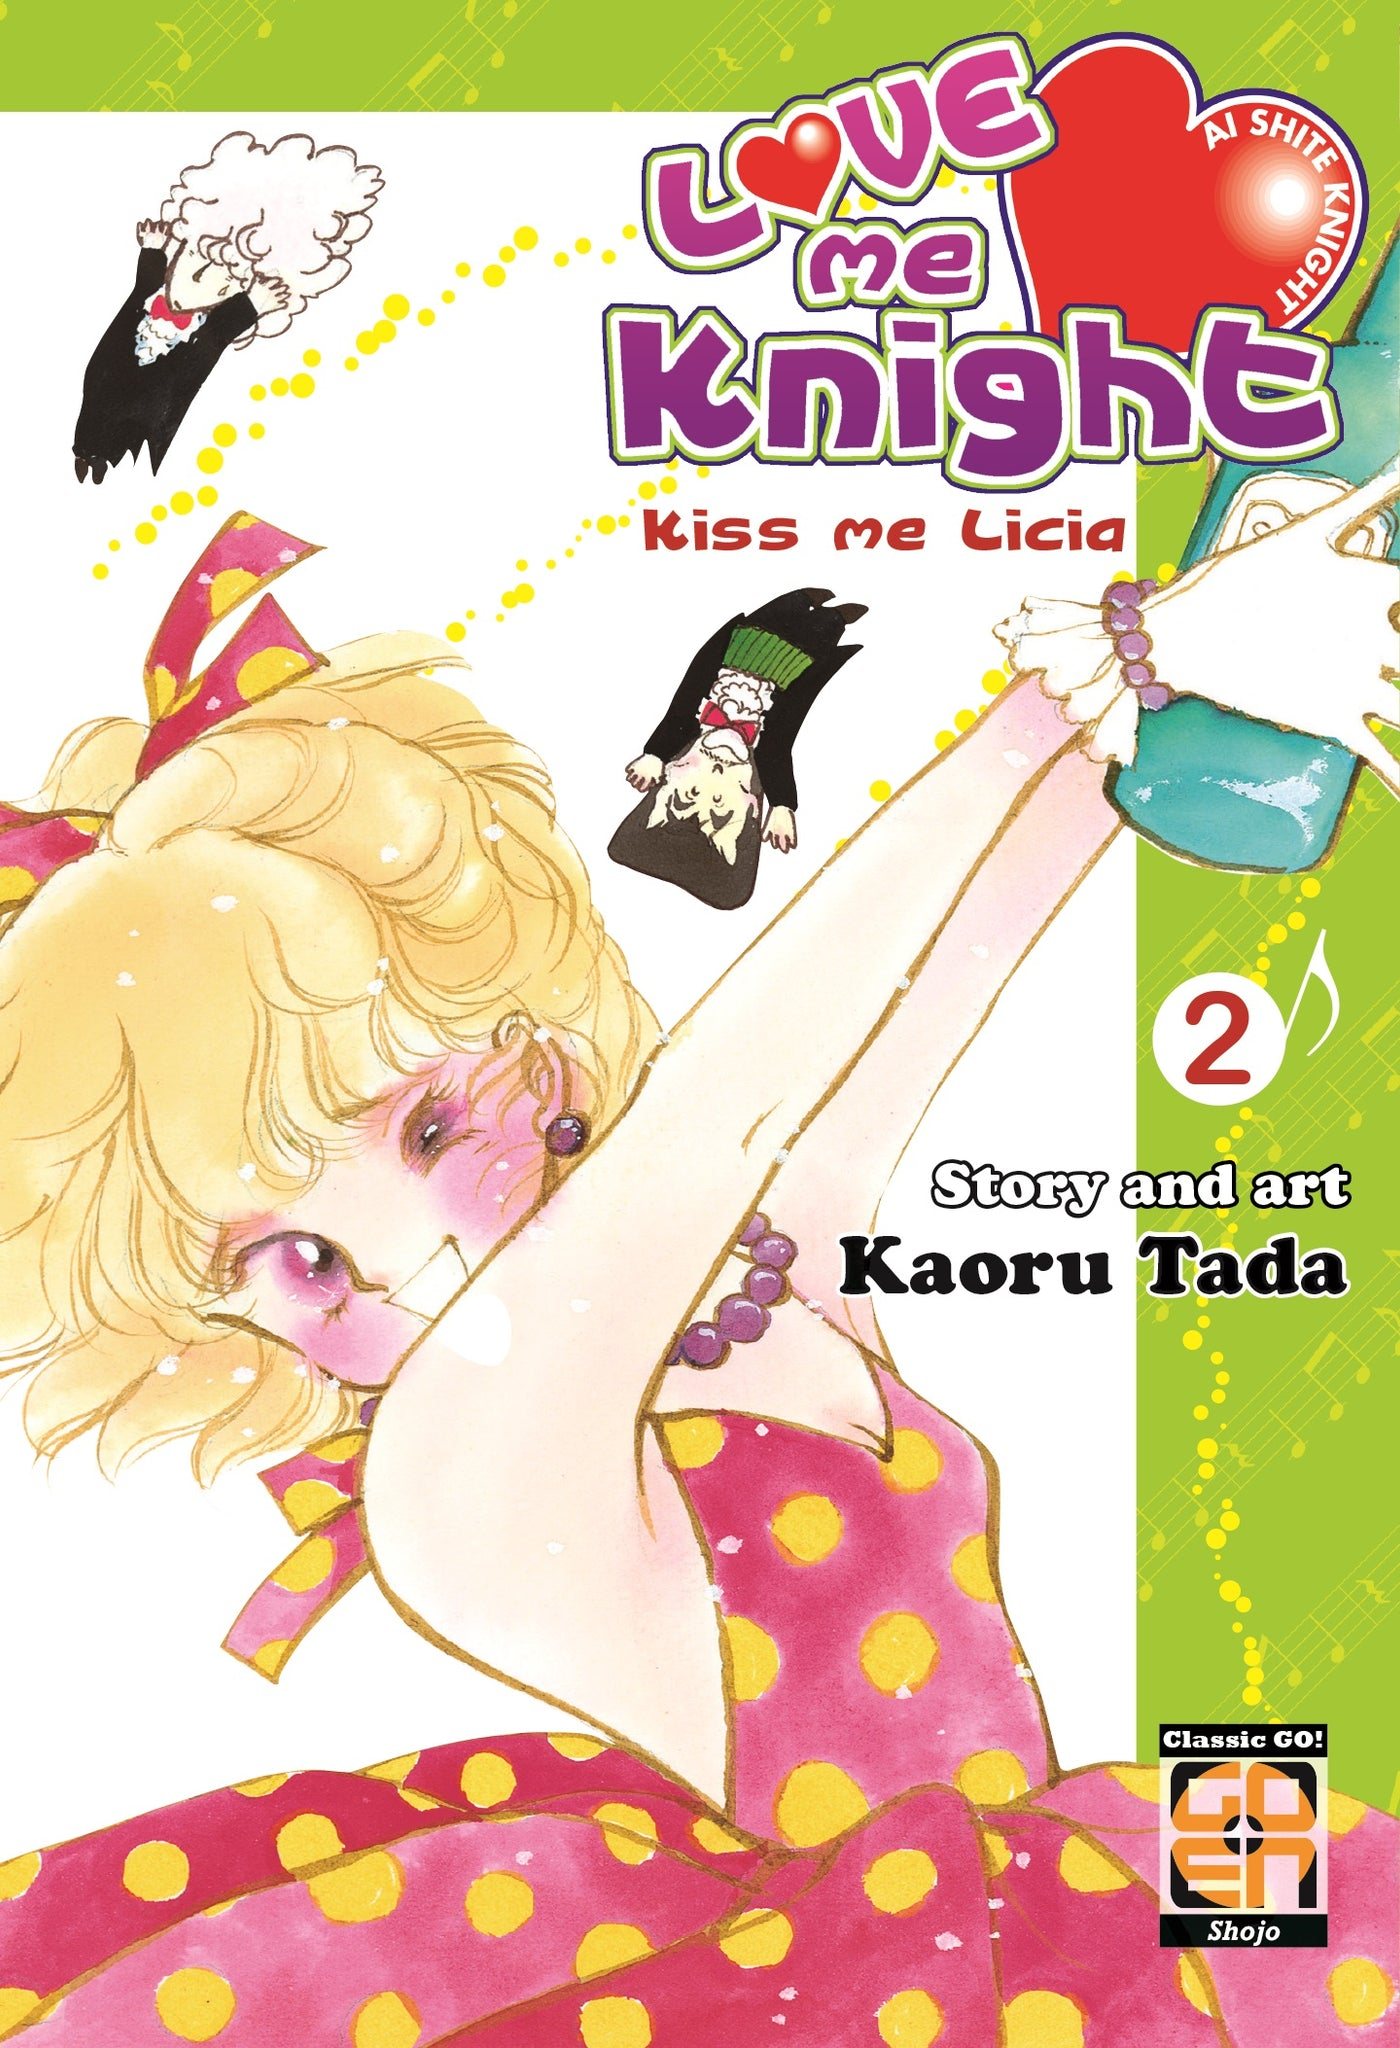 LADY COLLECTION (201100) 18 LOVE ME KNIGHT (201200) 2 di 7